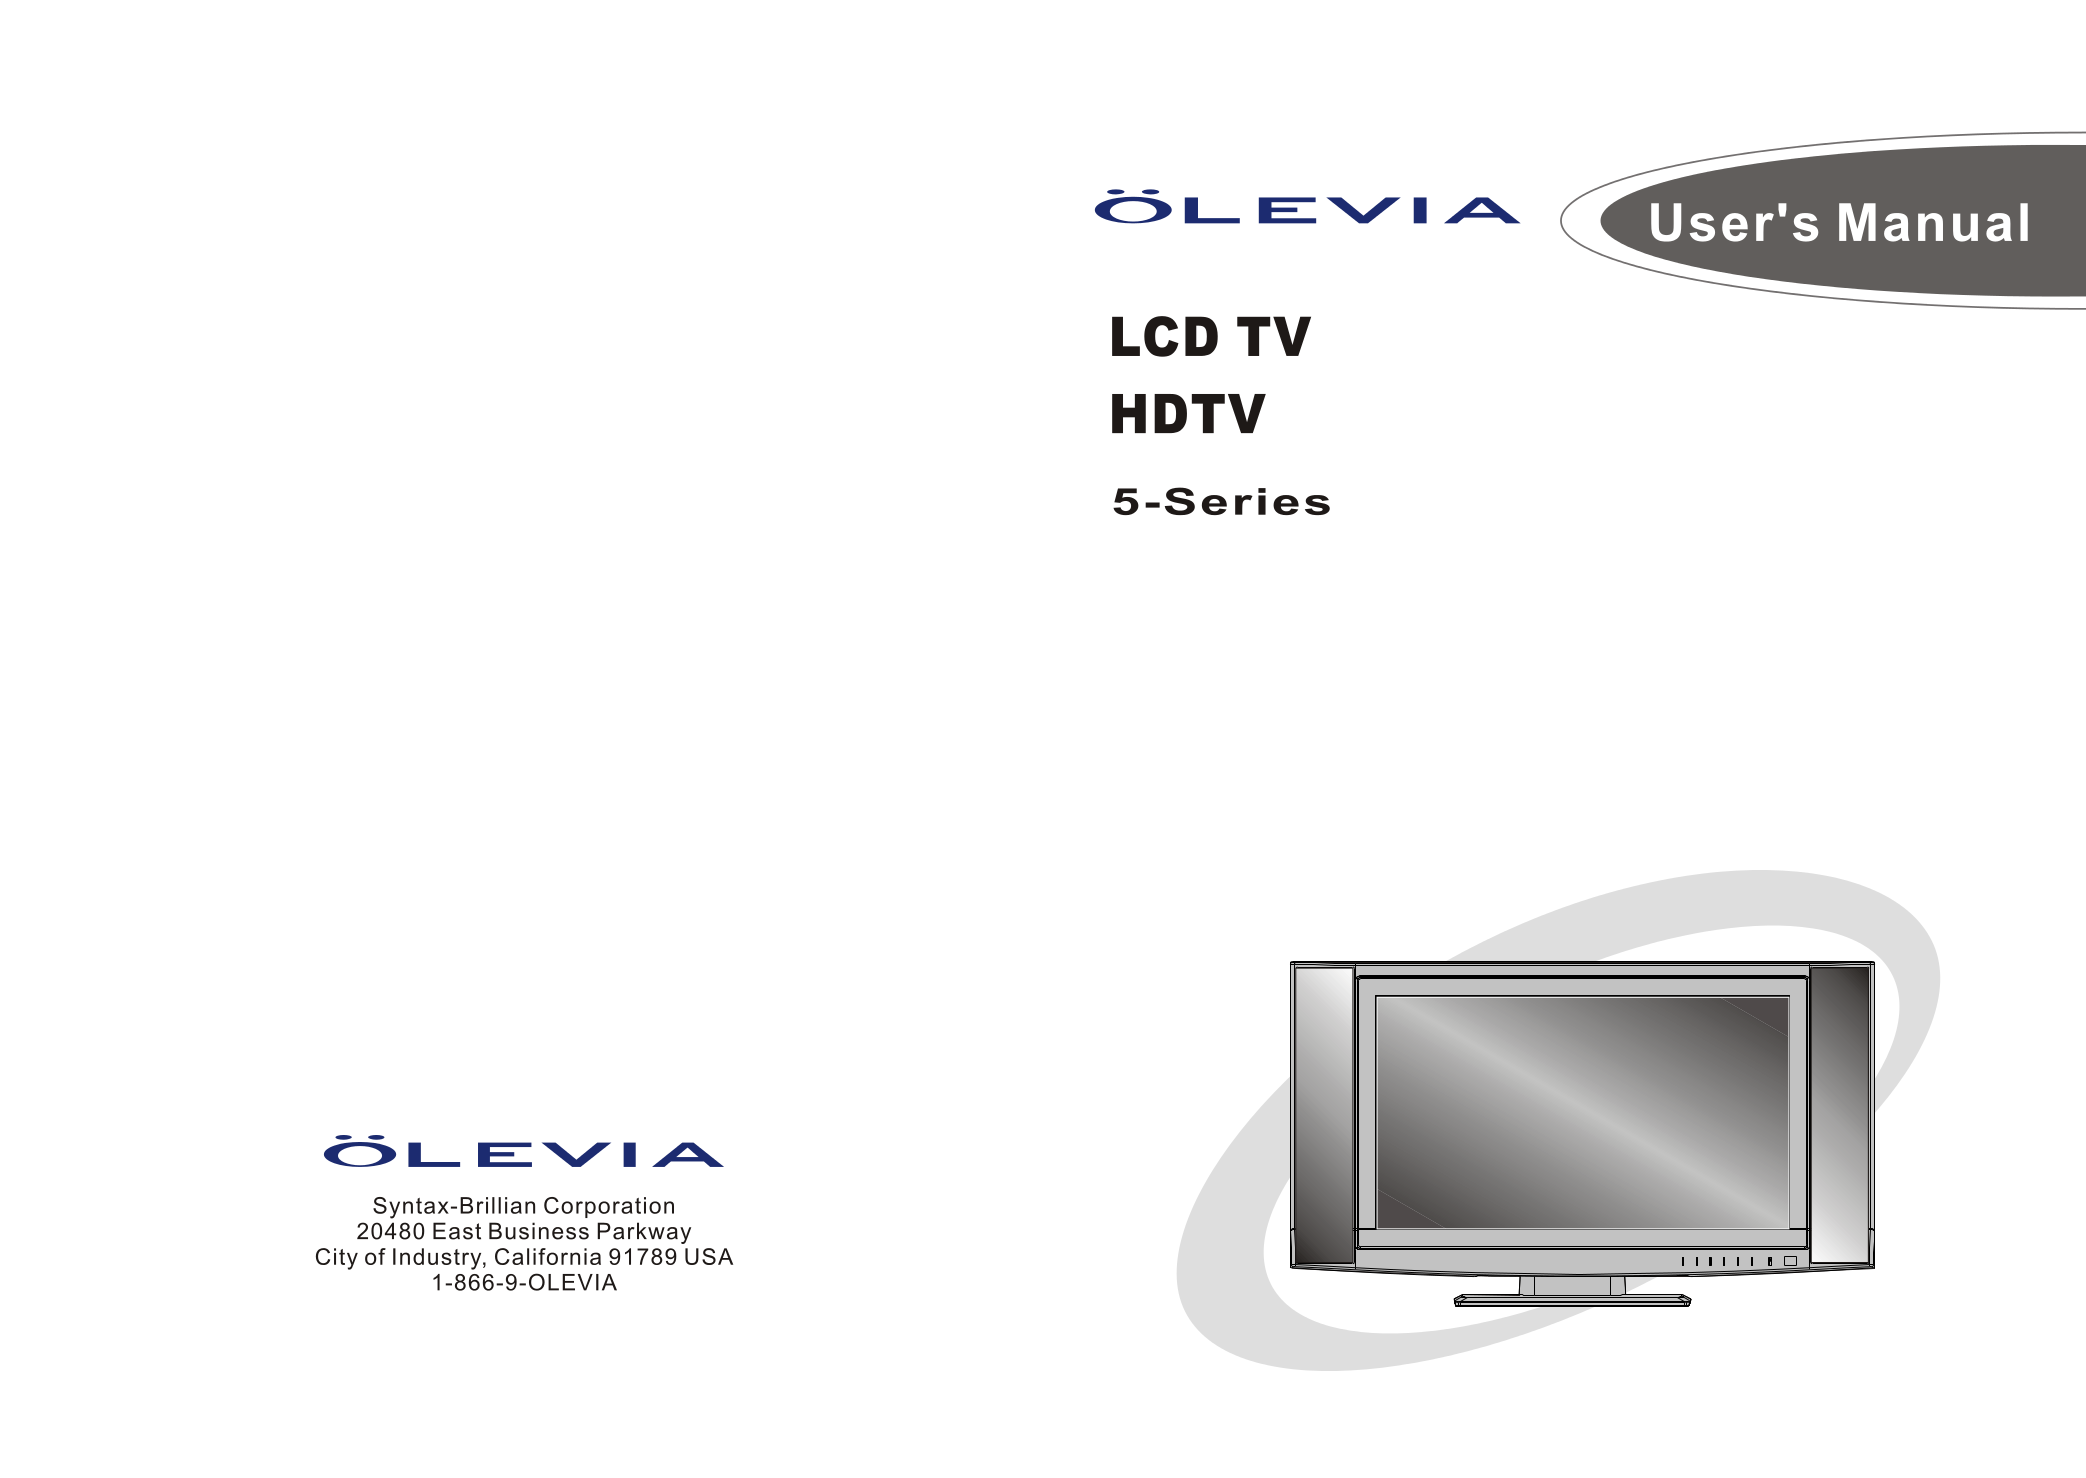 olevia 226 t11 manual how to and user guide instructions u2022 rh taxibermuda co olevia 232-t11 manual